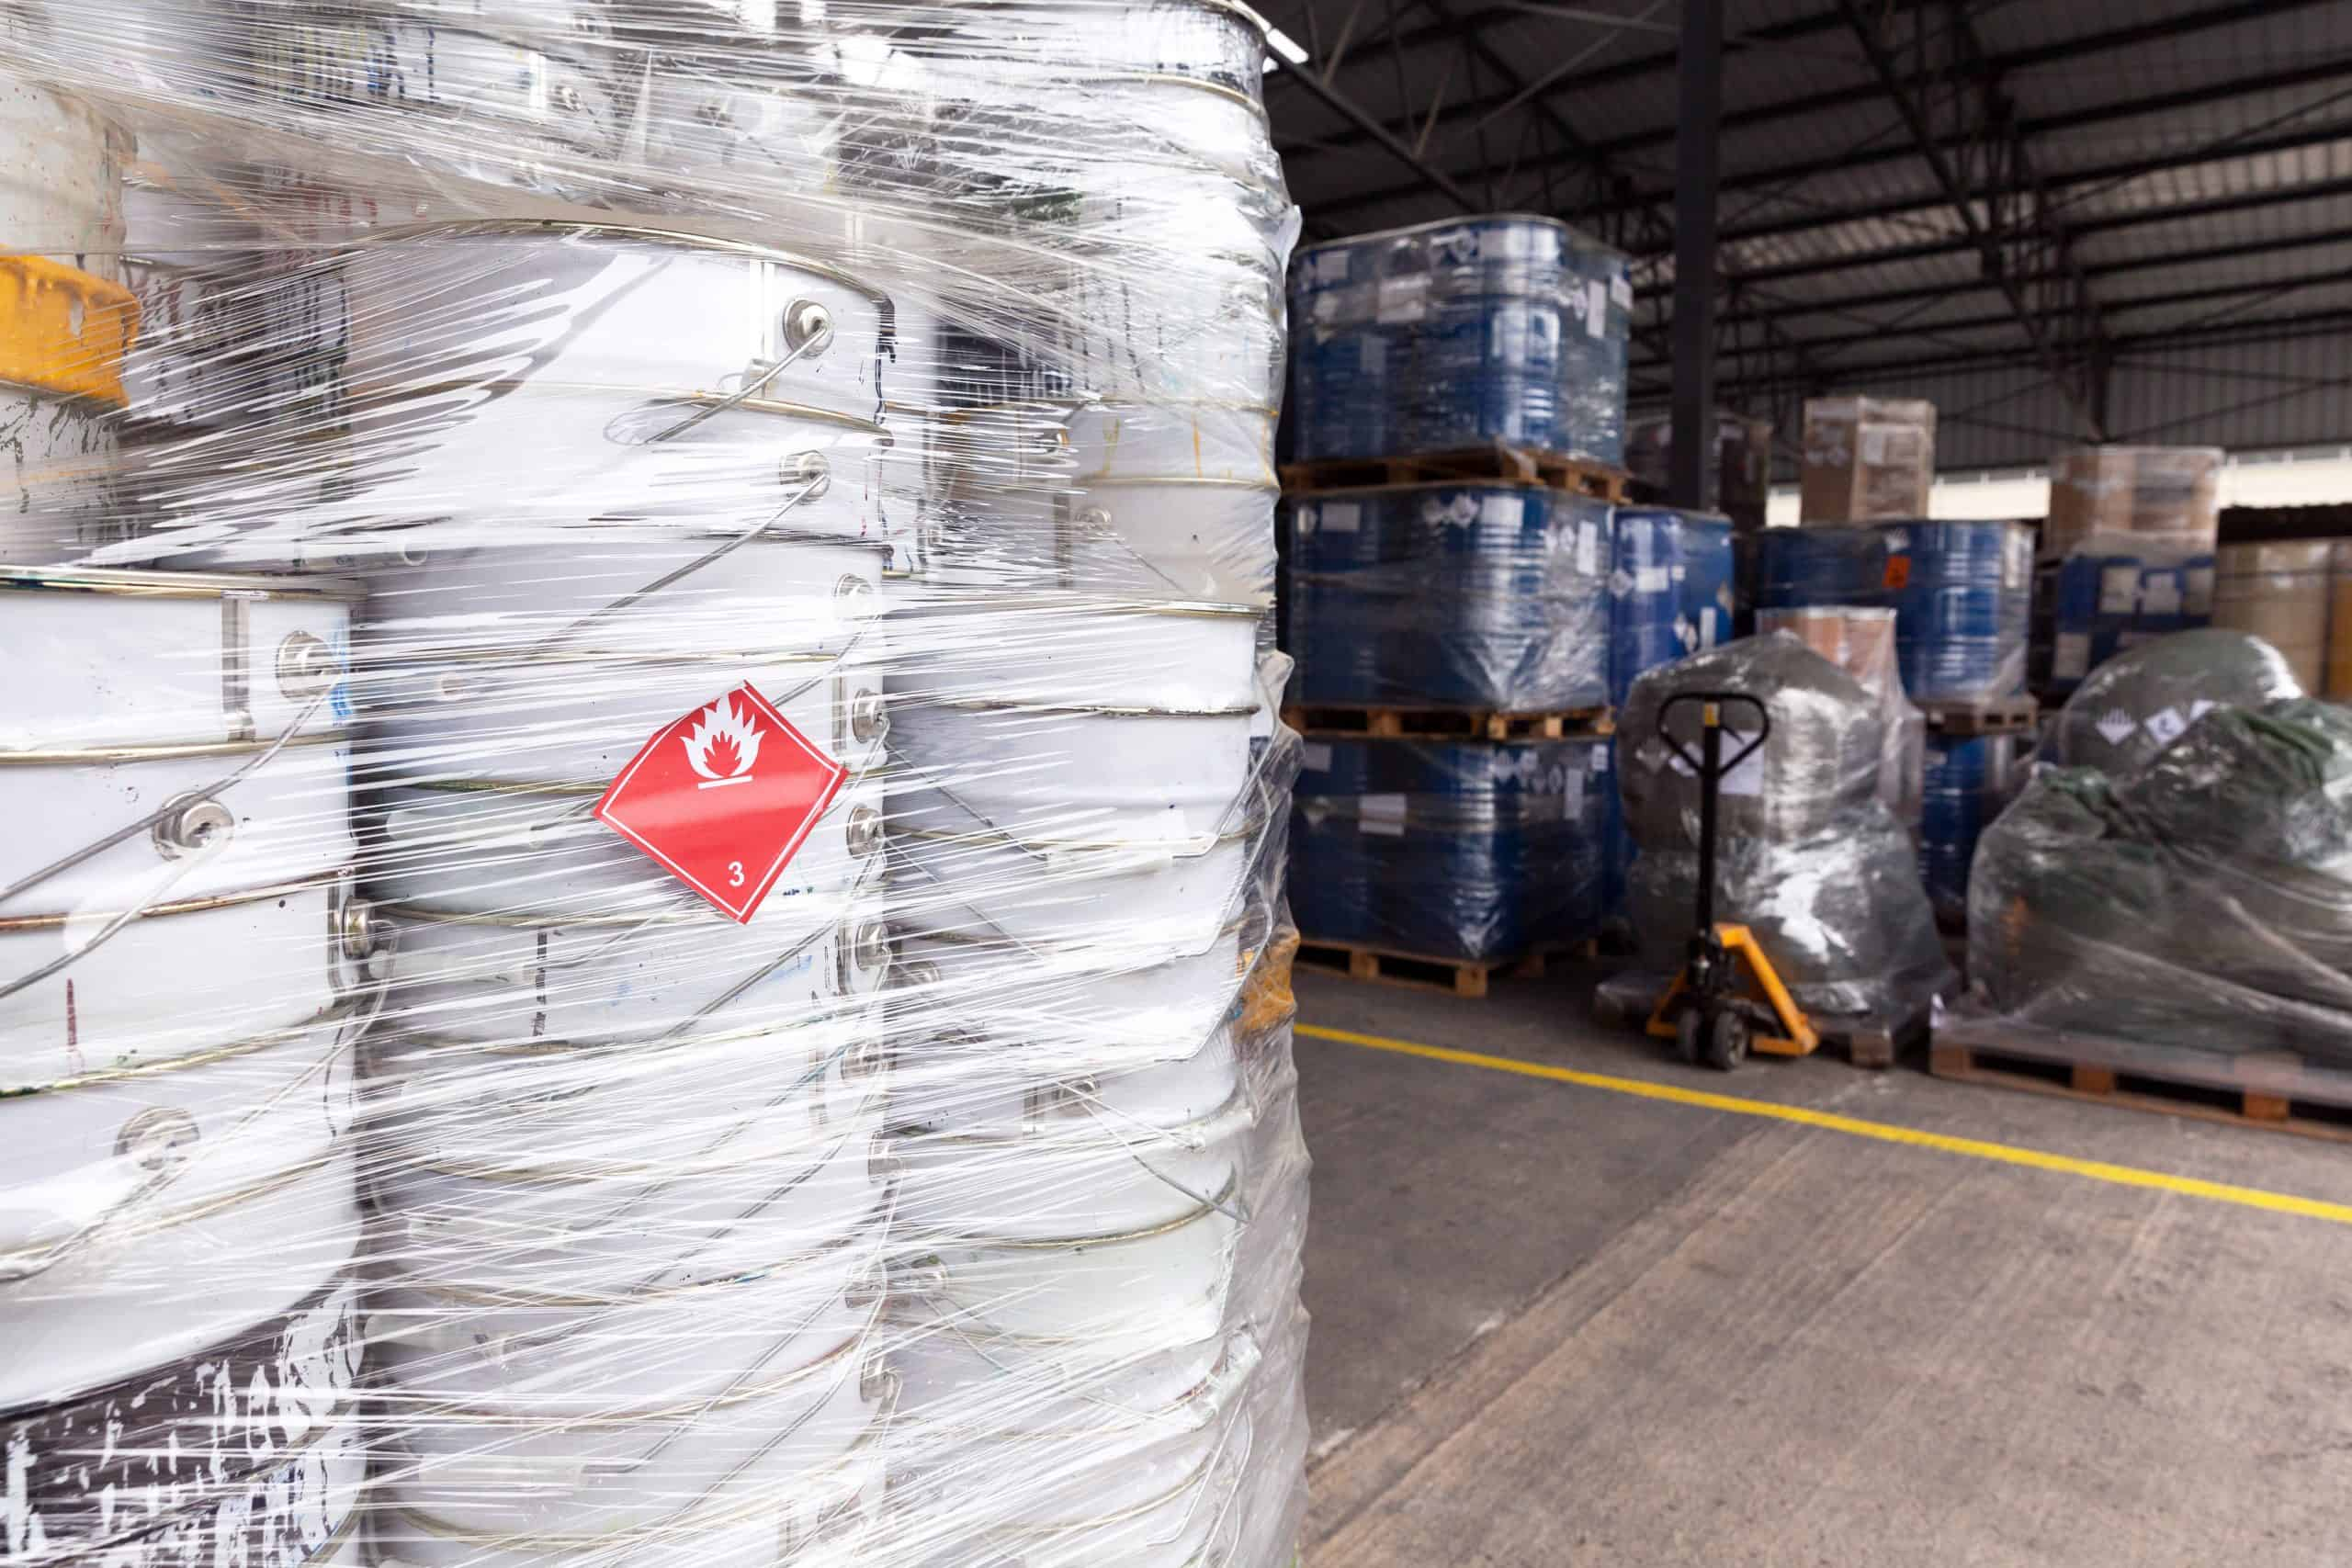 Waste barrels with hazard warning symbol in the warehouse